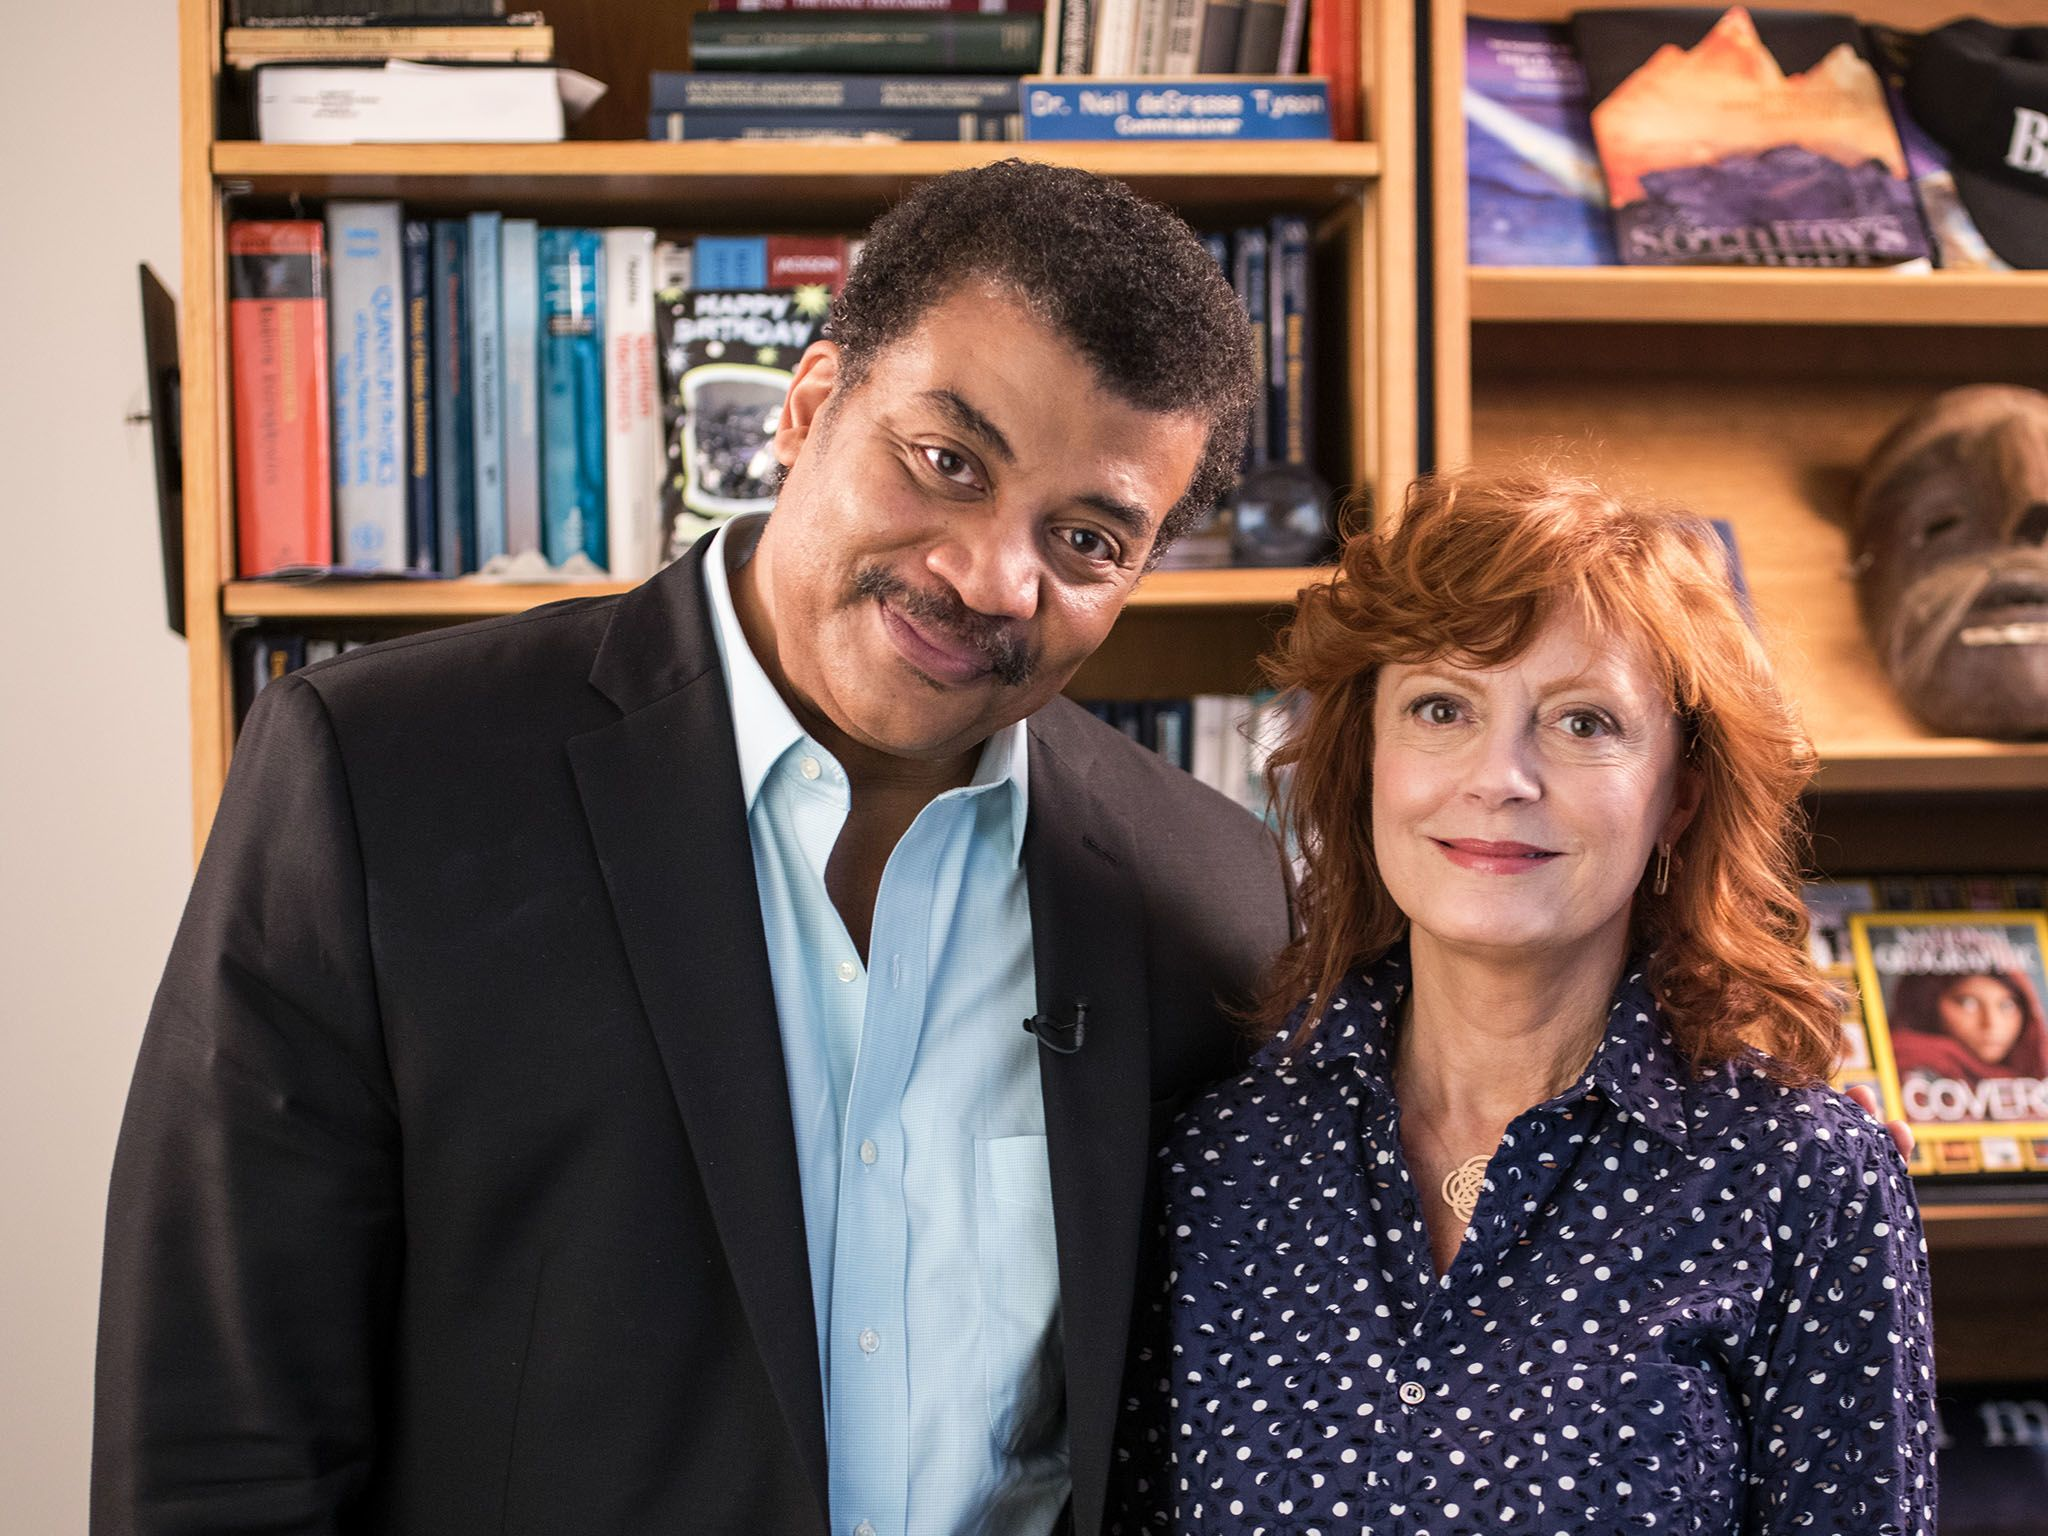 New York: Neil deGrasse Tyson e Susan Sarandon nell'ufficio di Neil all'American Museum of... [Foto del giorno - January 2016]